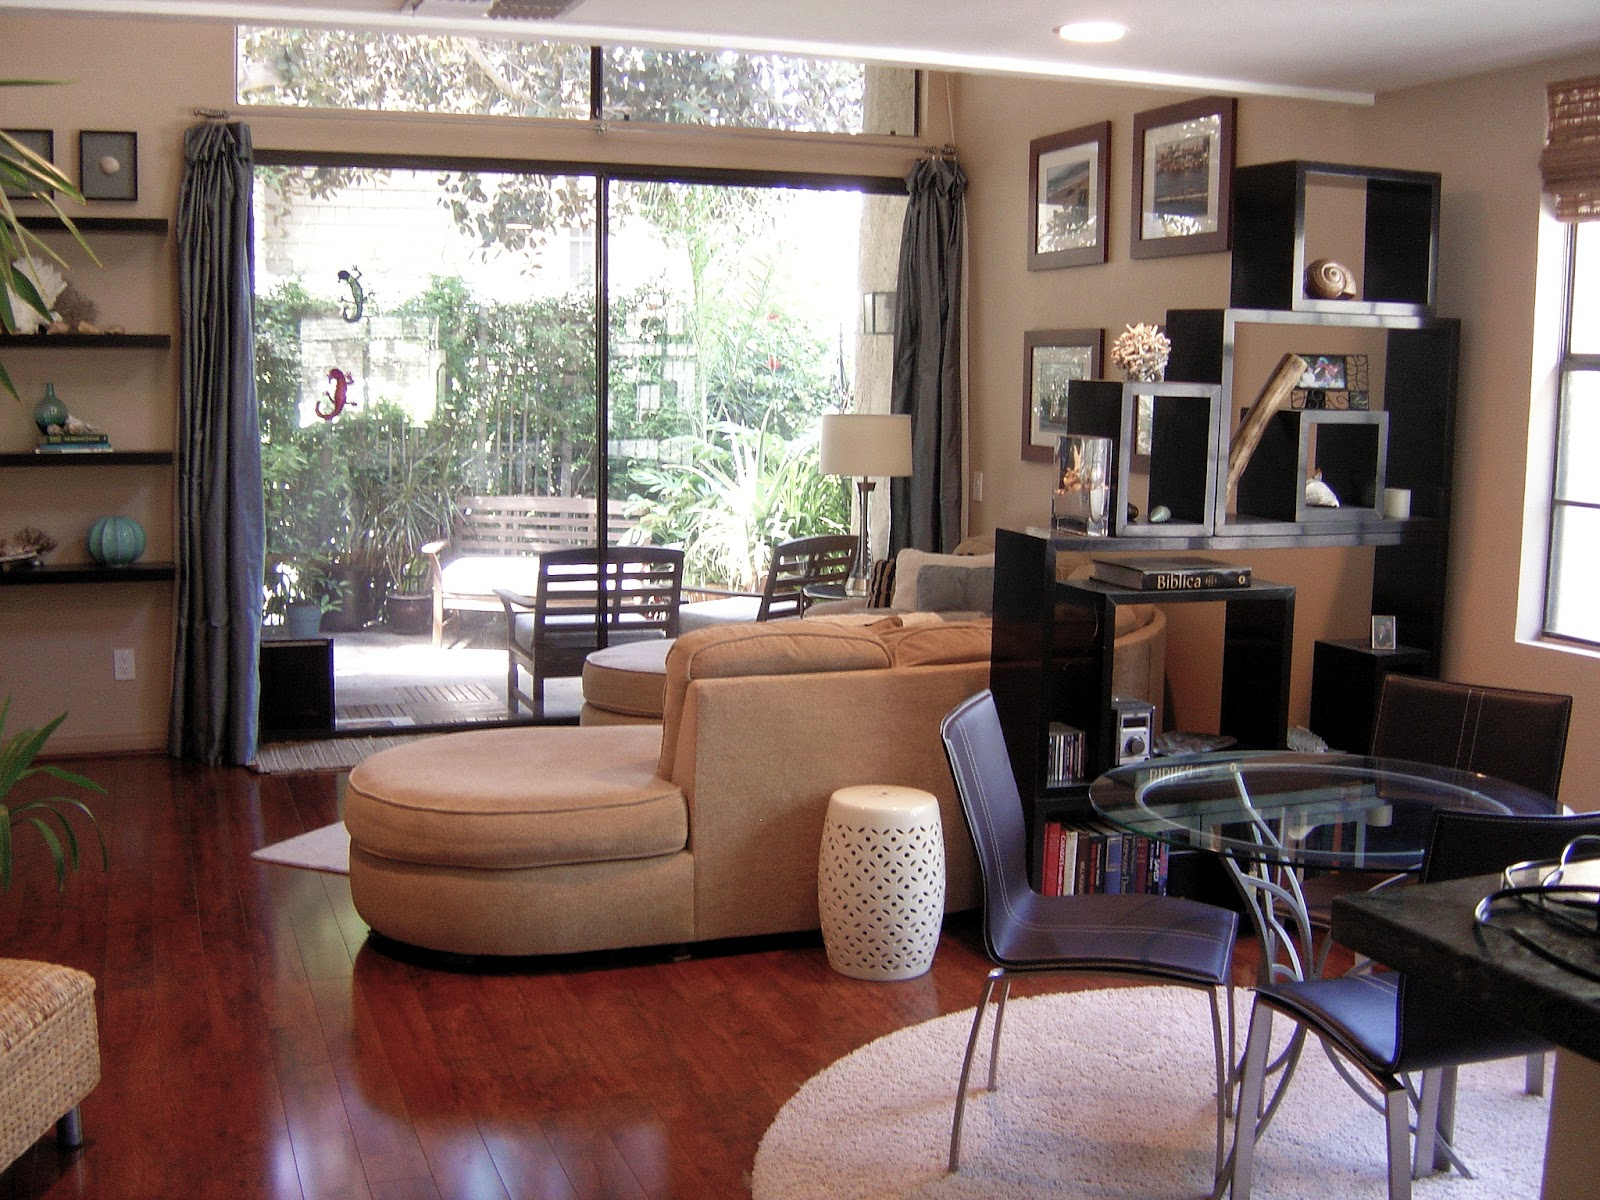 California Livin Home: Small Space, BIG ideas!